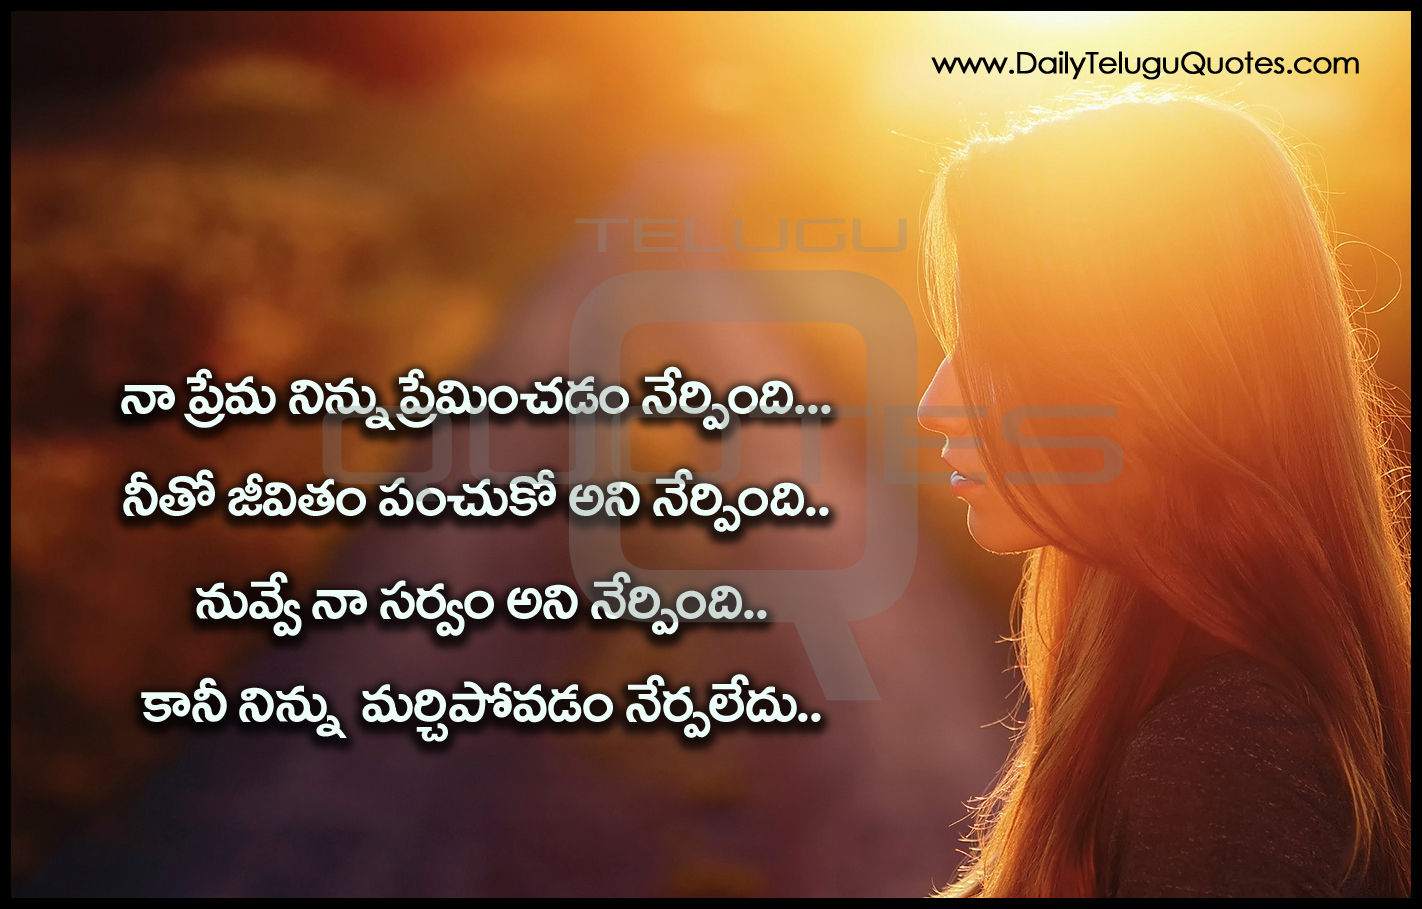 Love feeling quotes love feeling quotes with - Beautiful Tamil Love Romantic Quotes Whatsapp Status With Images Facebook Cover Tamil Prema Kavithalu Love Feelings Thoughts Sayings Hd Wallpapers